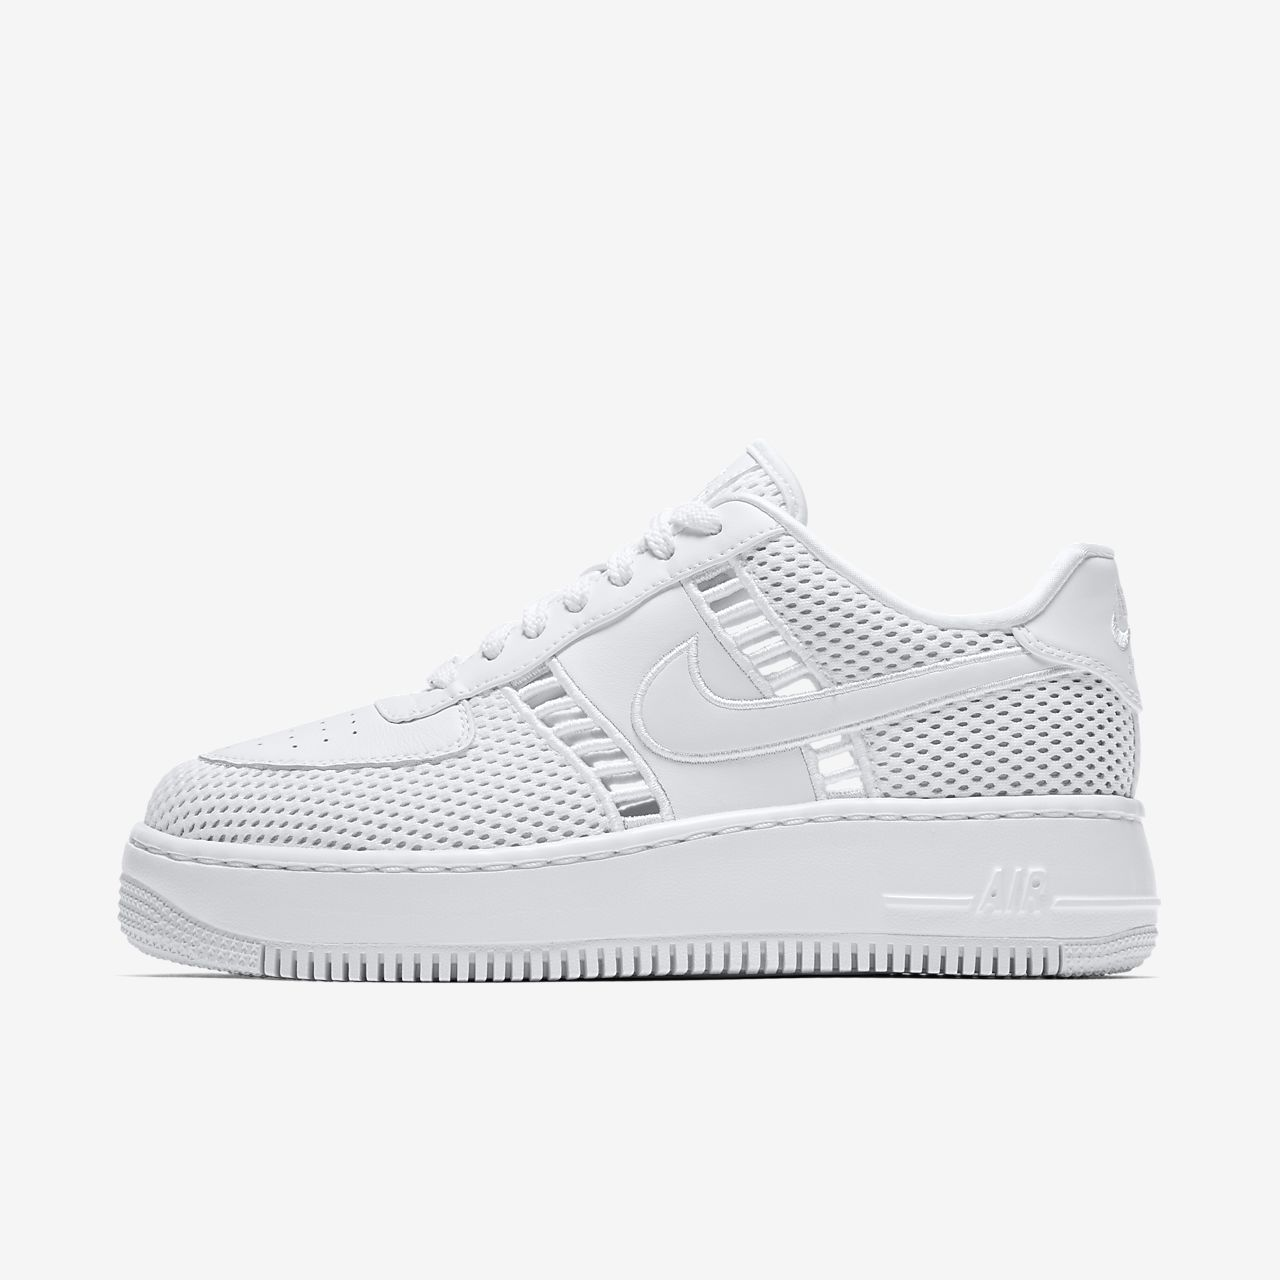 Air Force 1 Basse Marronnike Air Force 1 Upstepair Force